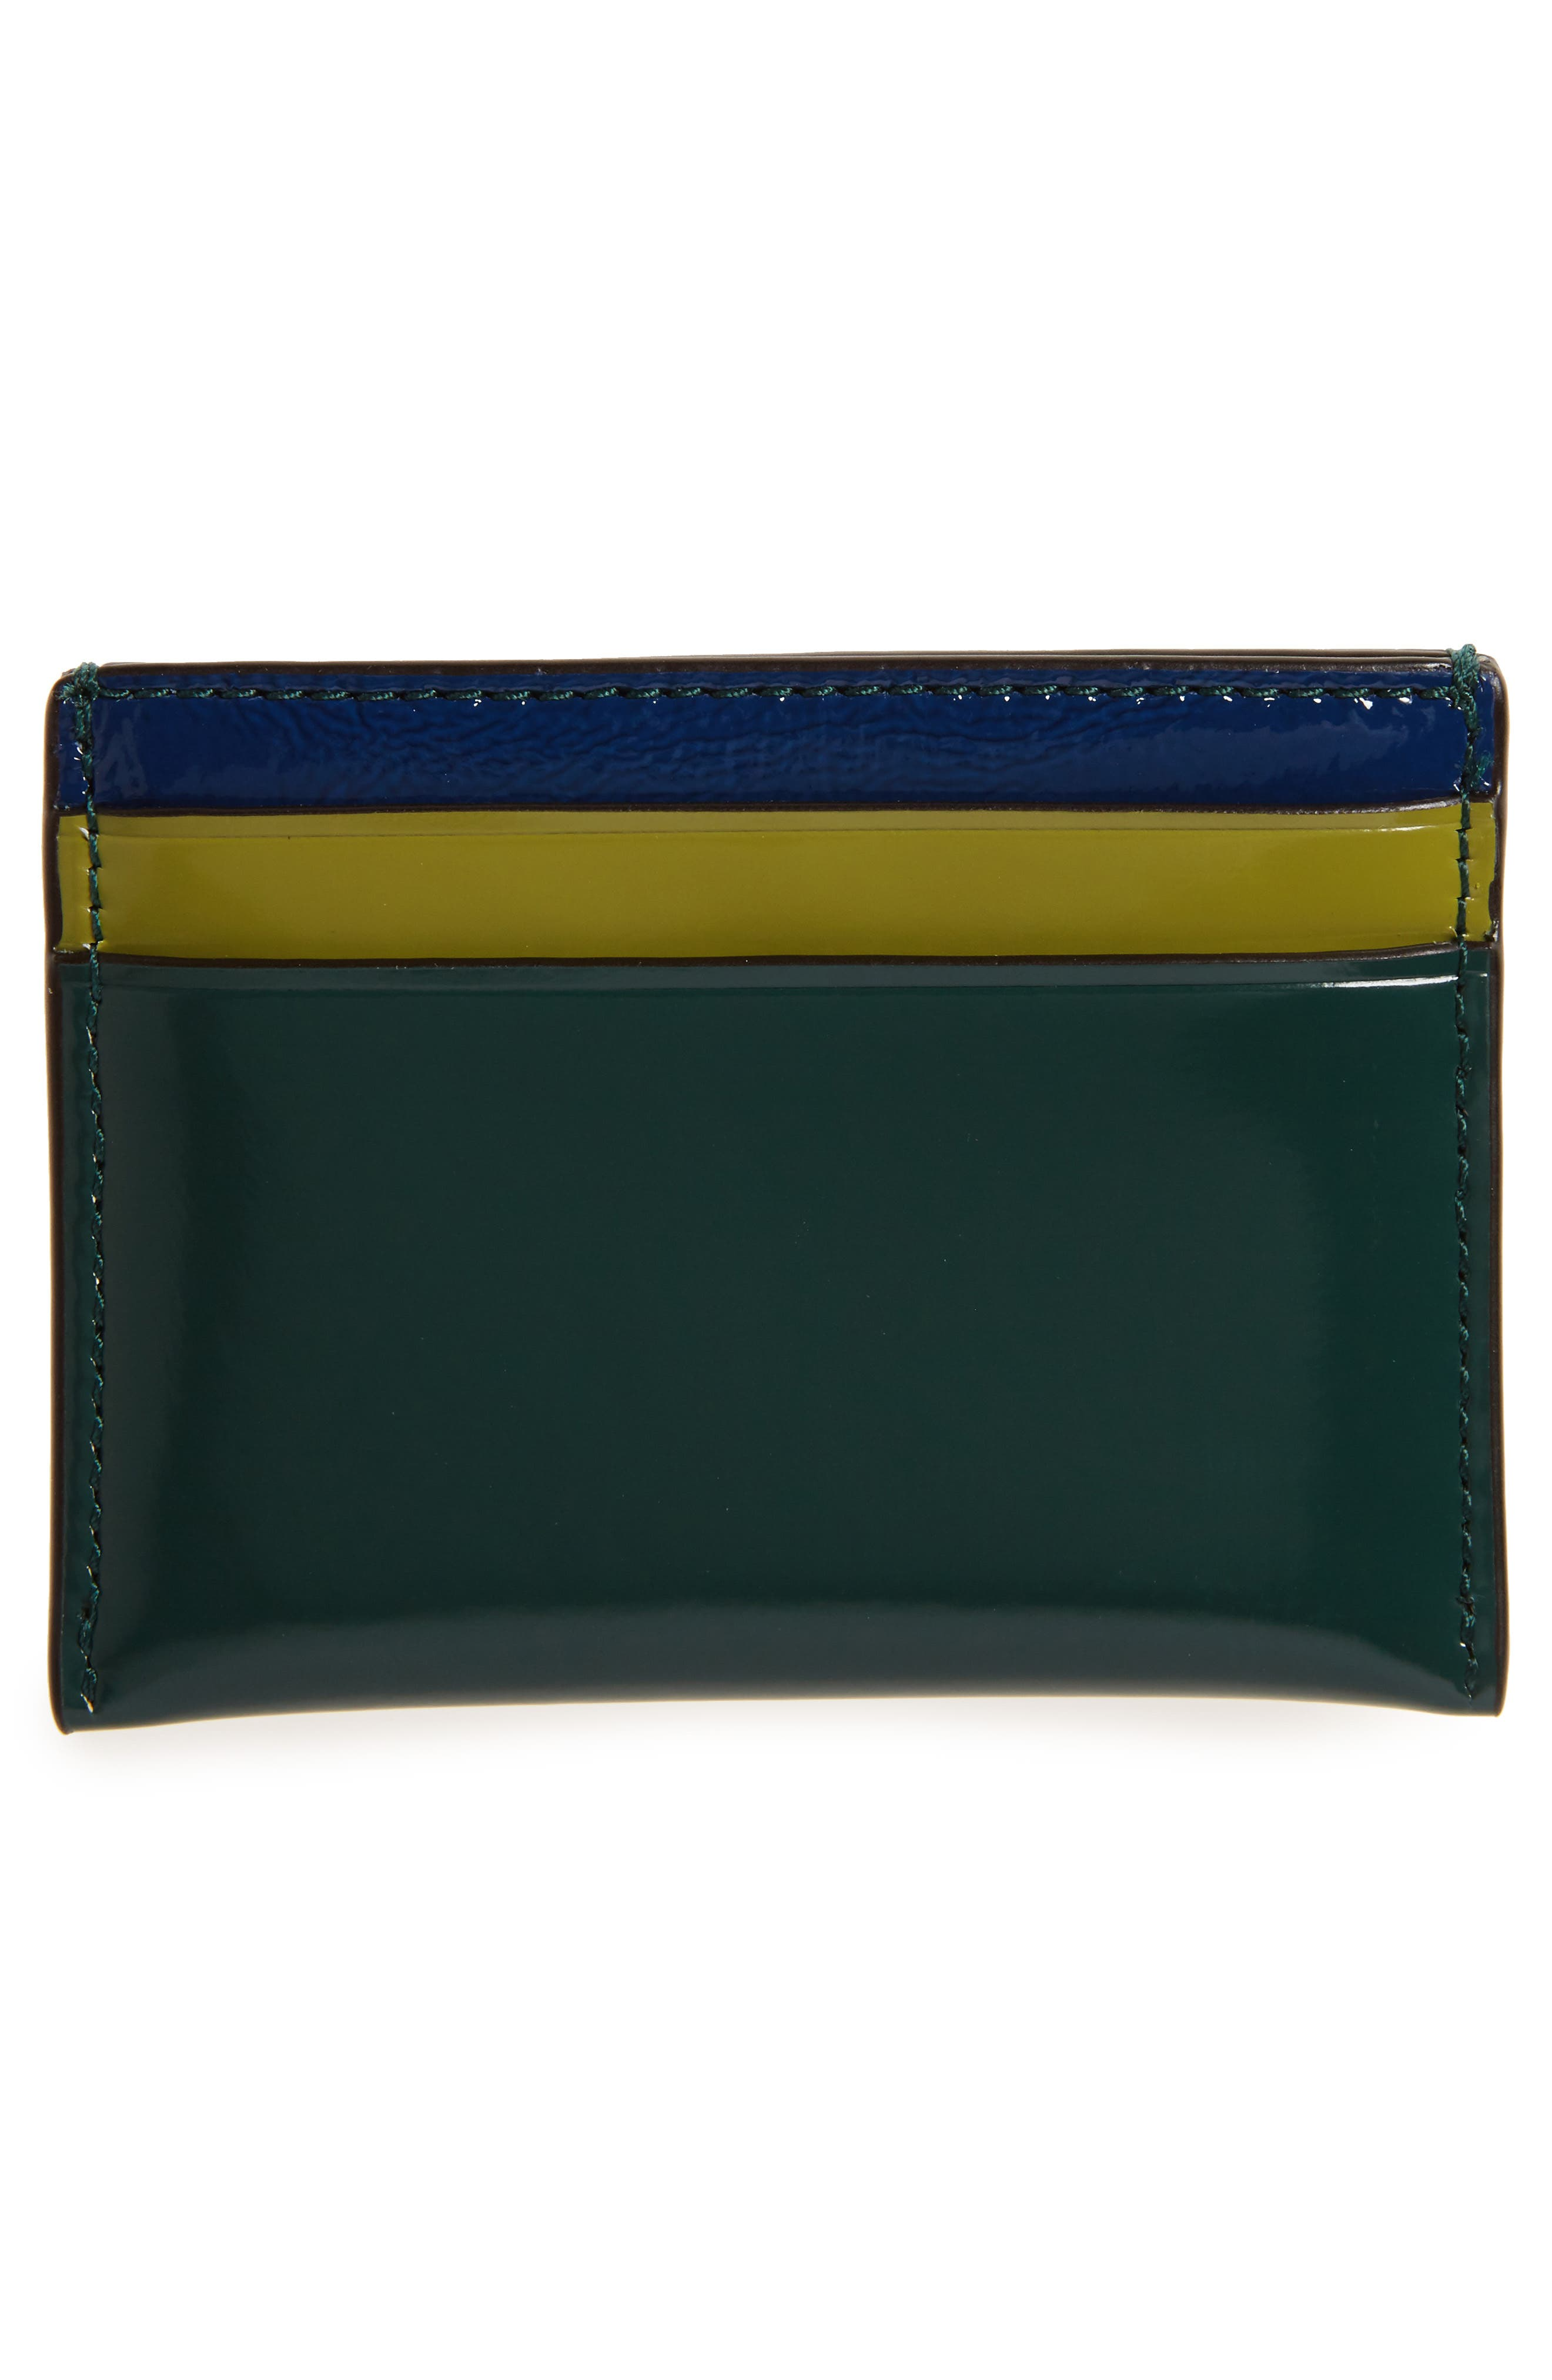 Turtle Appliqué Leather & Genuine Snakeskin Card Case,                             Alternate thumbnail 2, color,                             Malachite